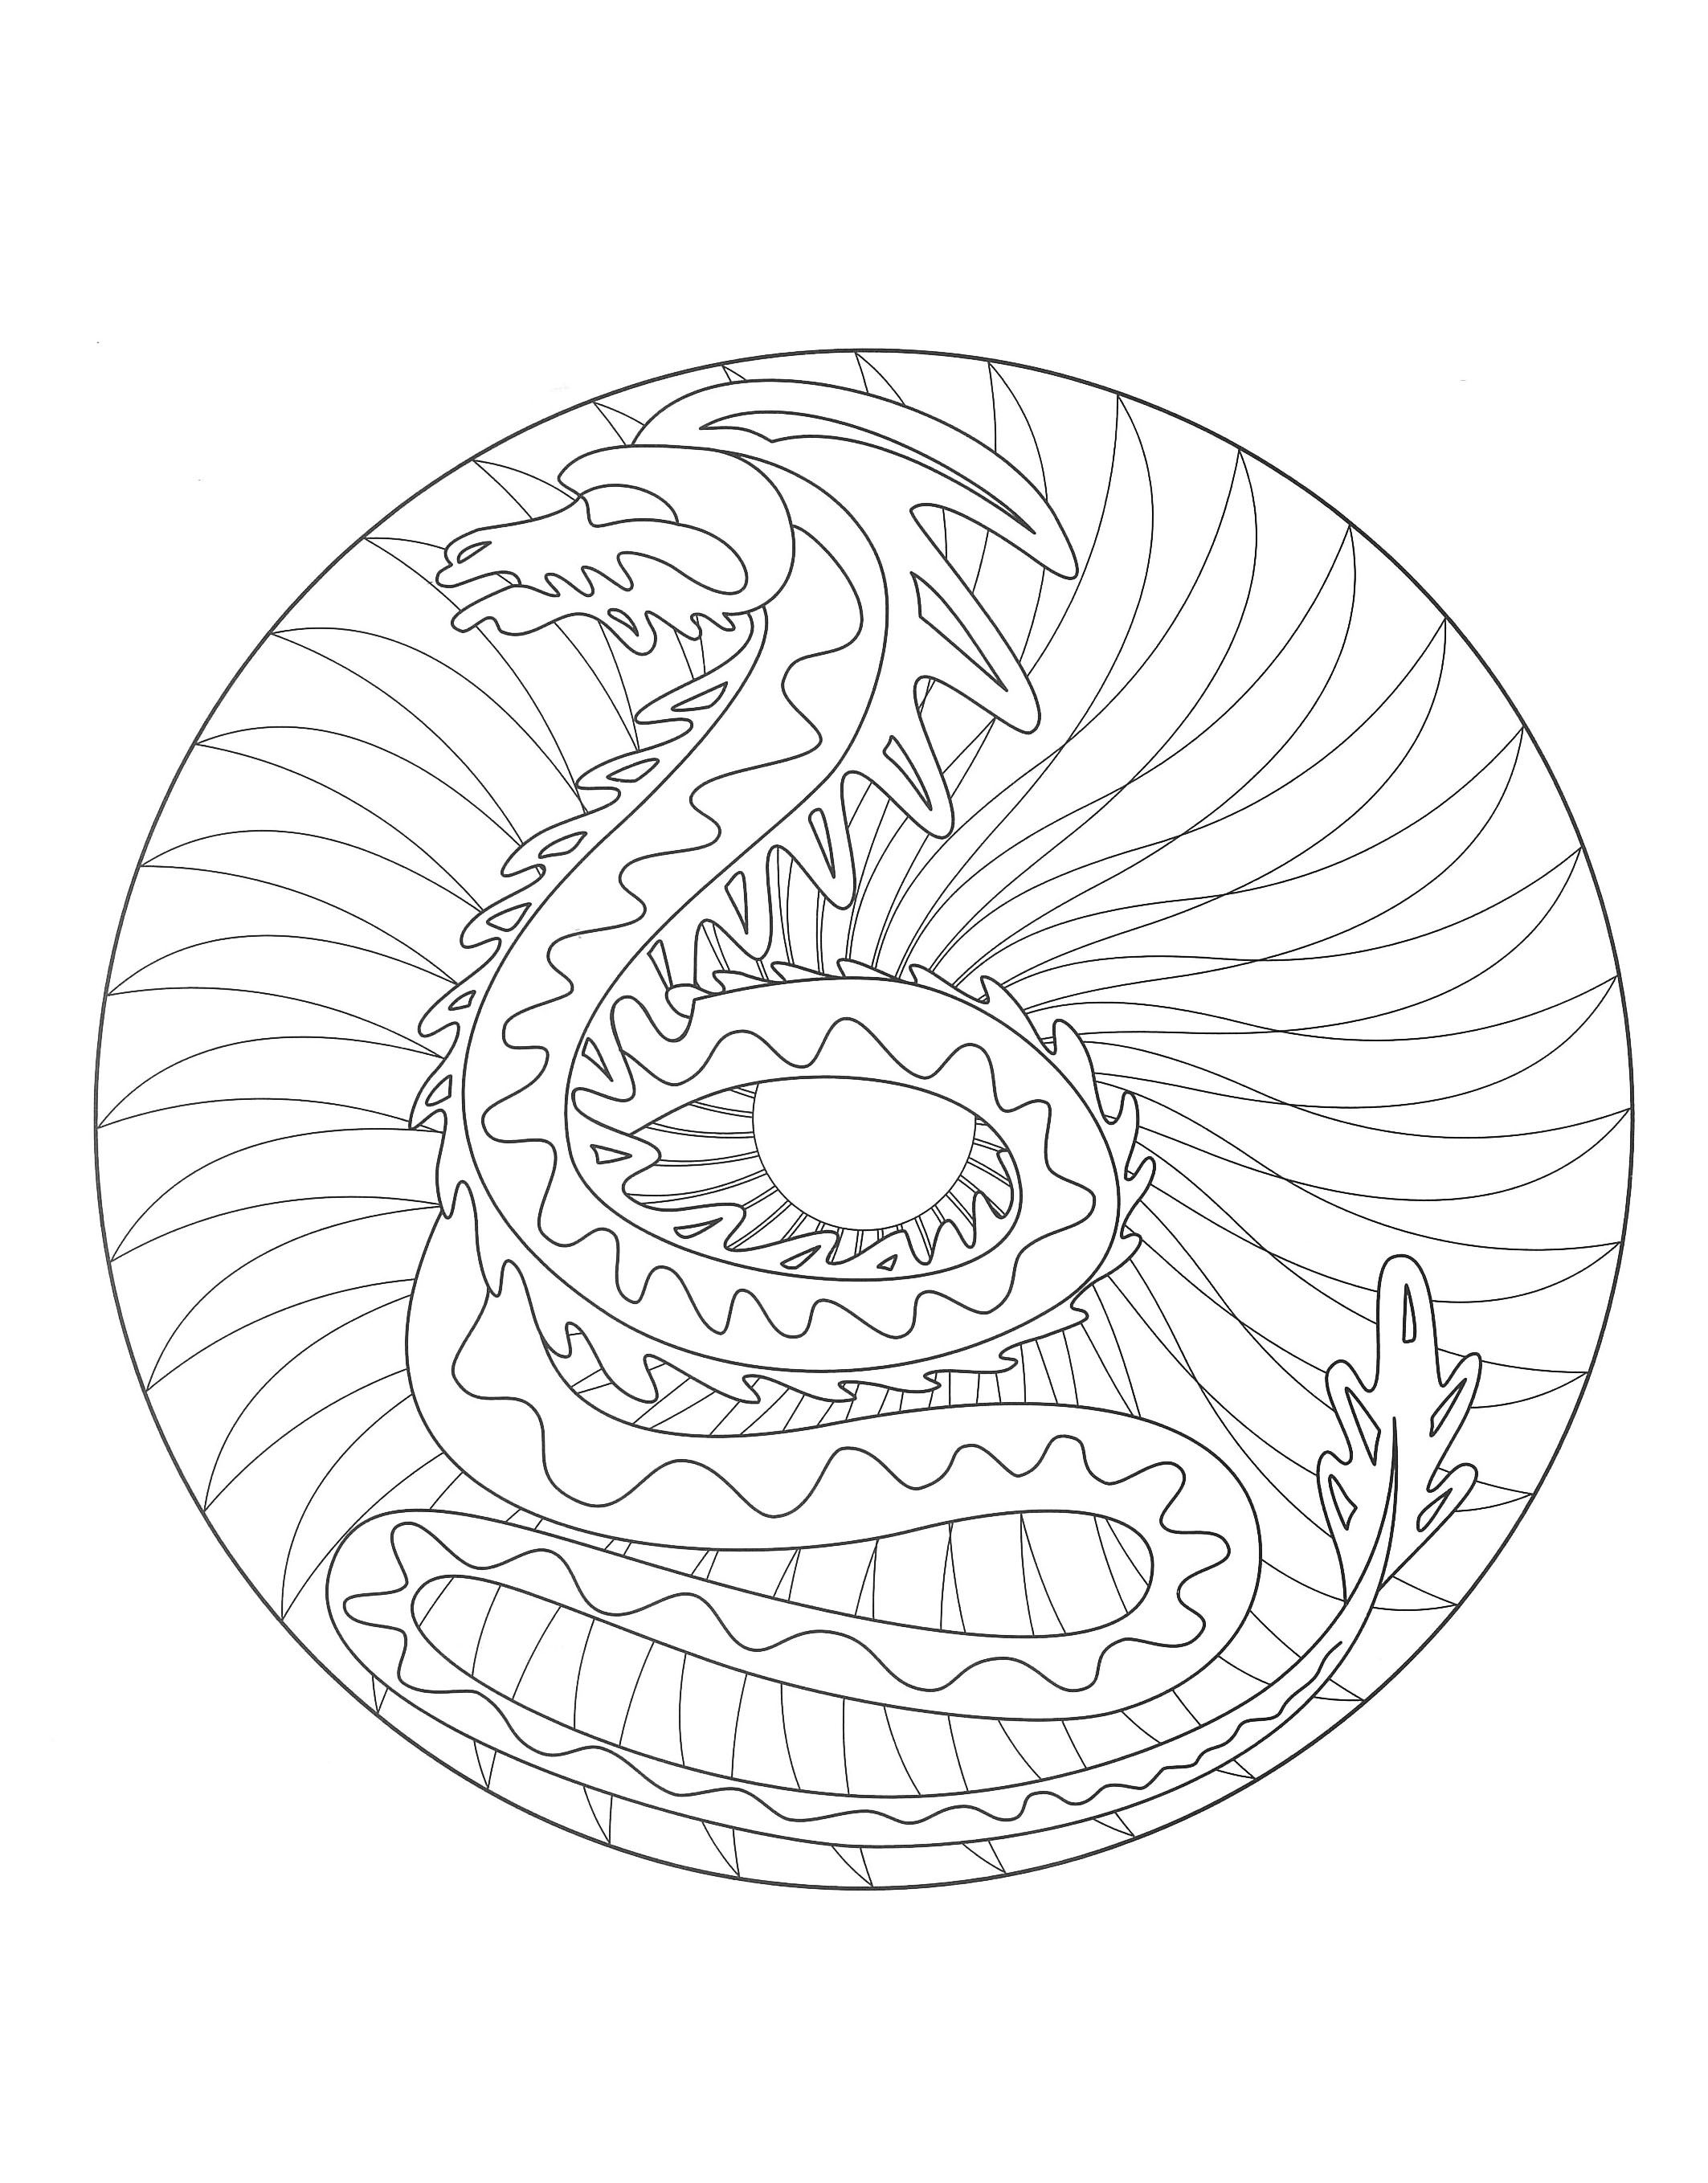 free mandala coloring page representing a dragon to download on